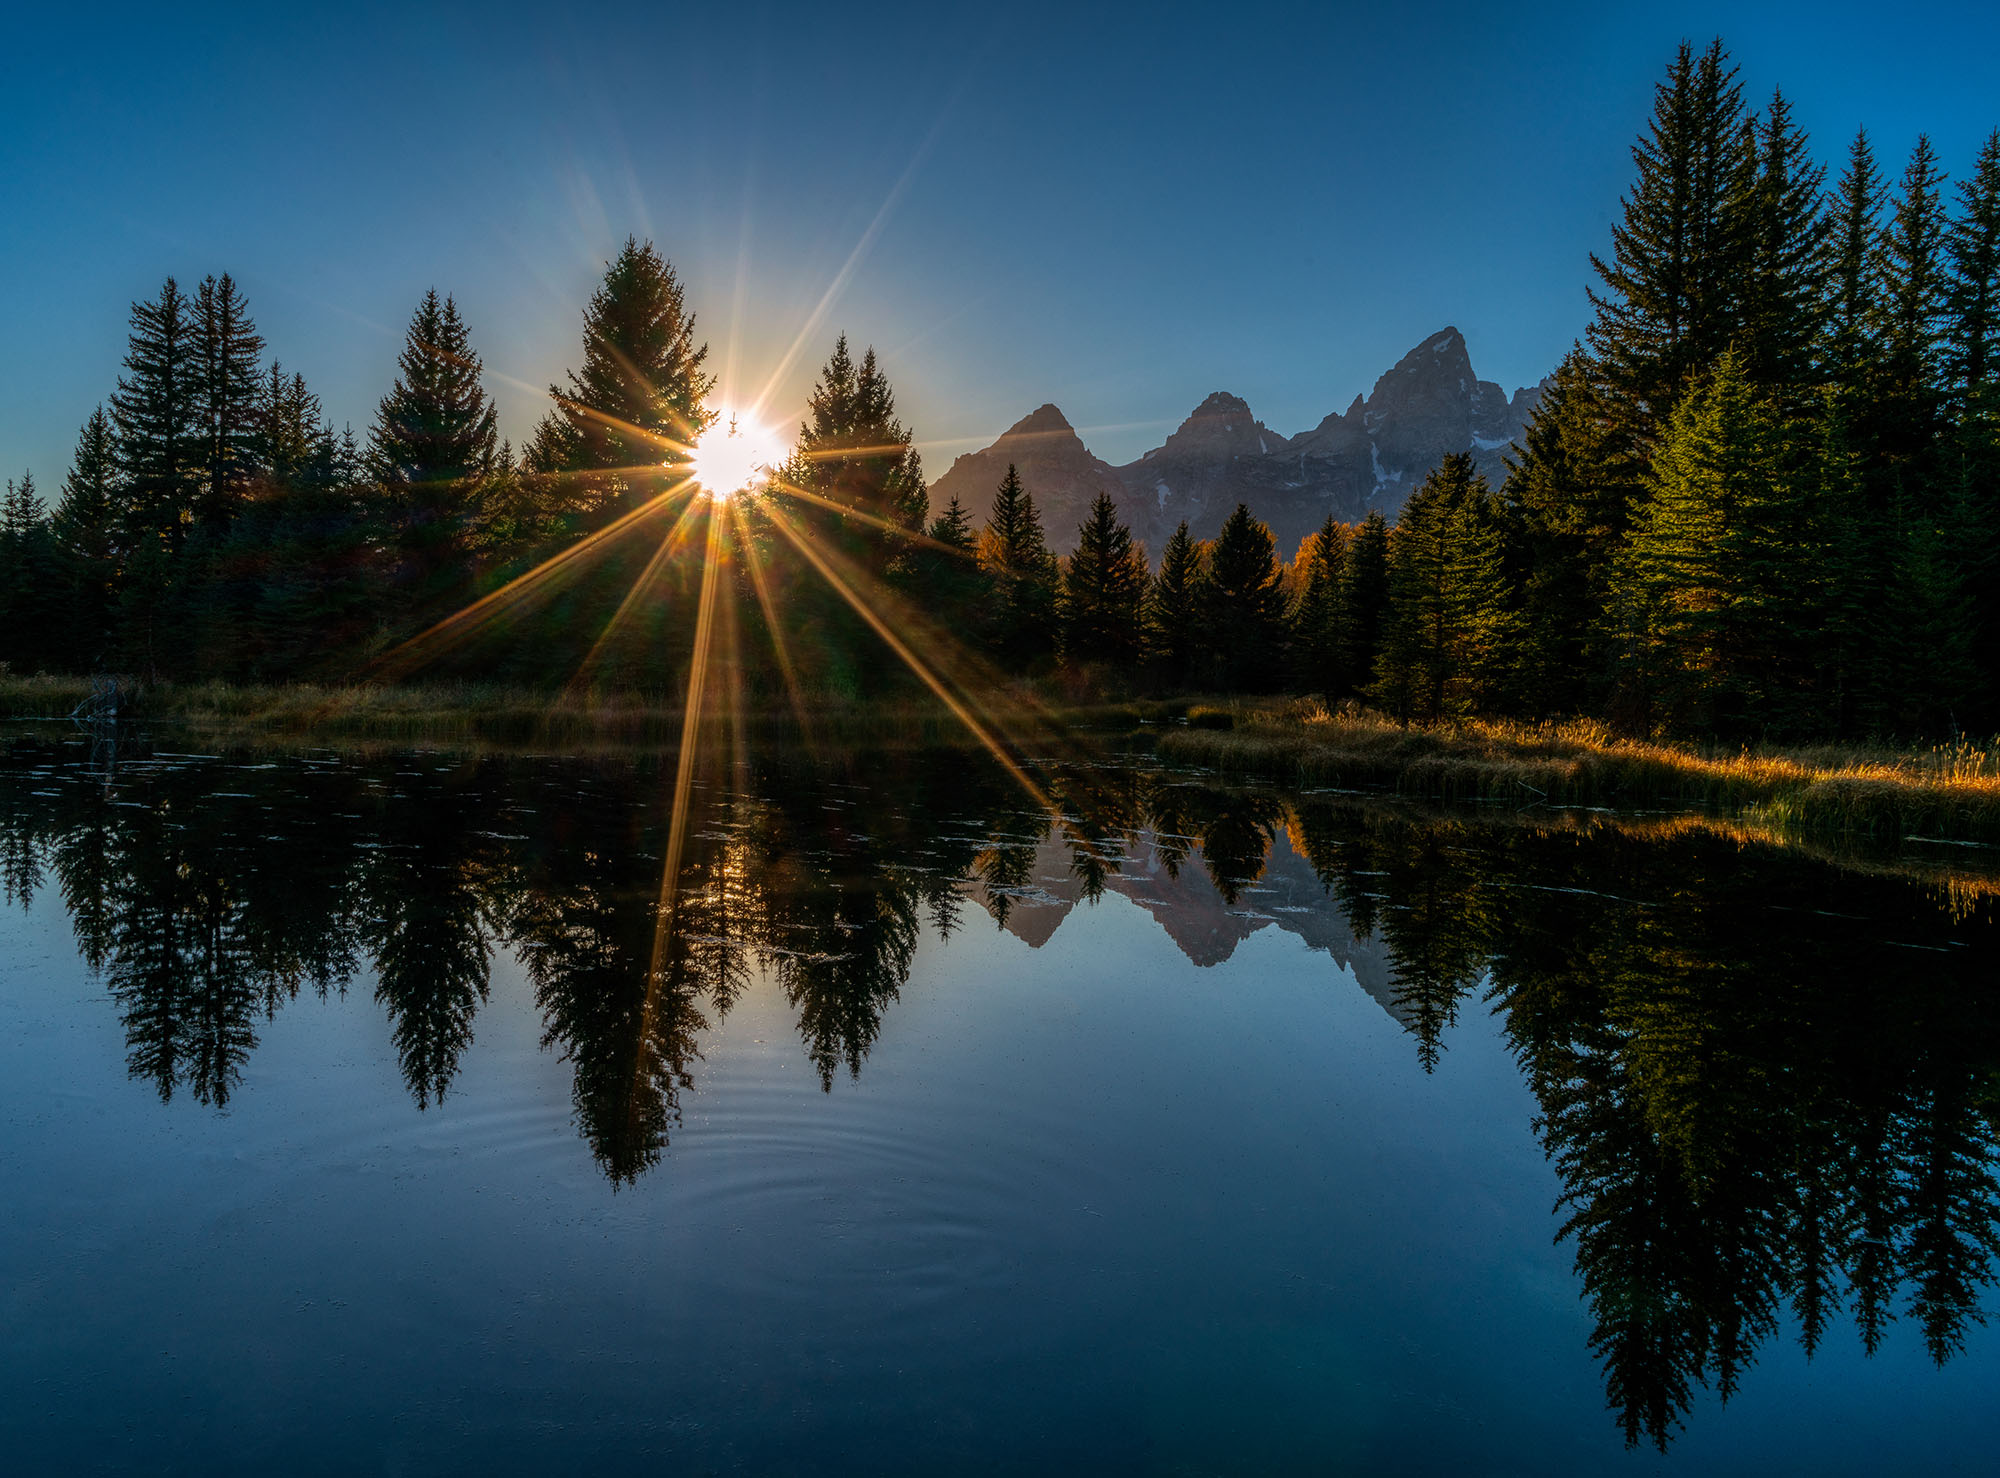 #sunset, #grandtetons, #schumacherslanding, #grandtetonnationalpark, #nationalparks, #sunstar, #noclouds, #sky, #reflection, #stillness, #landscape, #landscapephotography, #evergreens, #howto